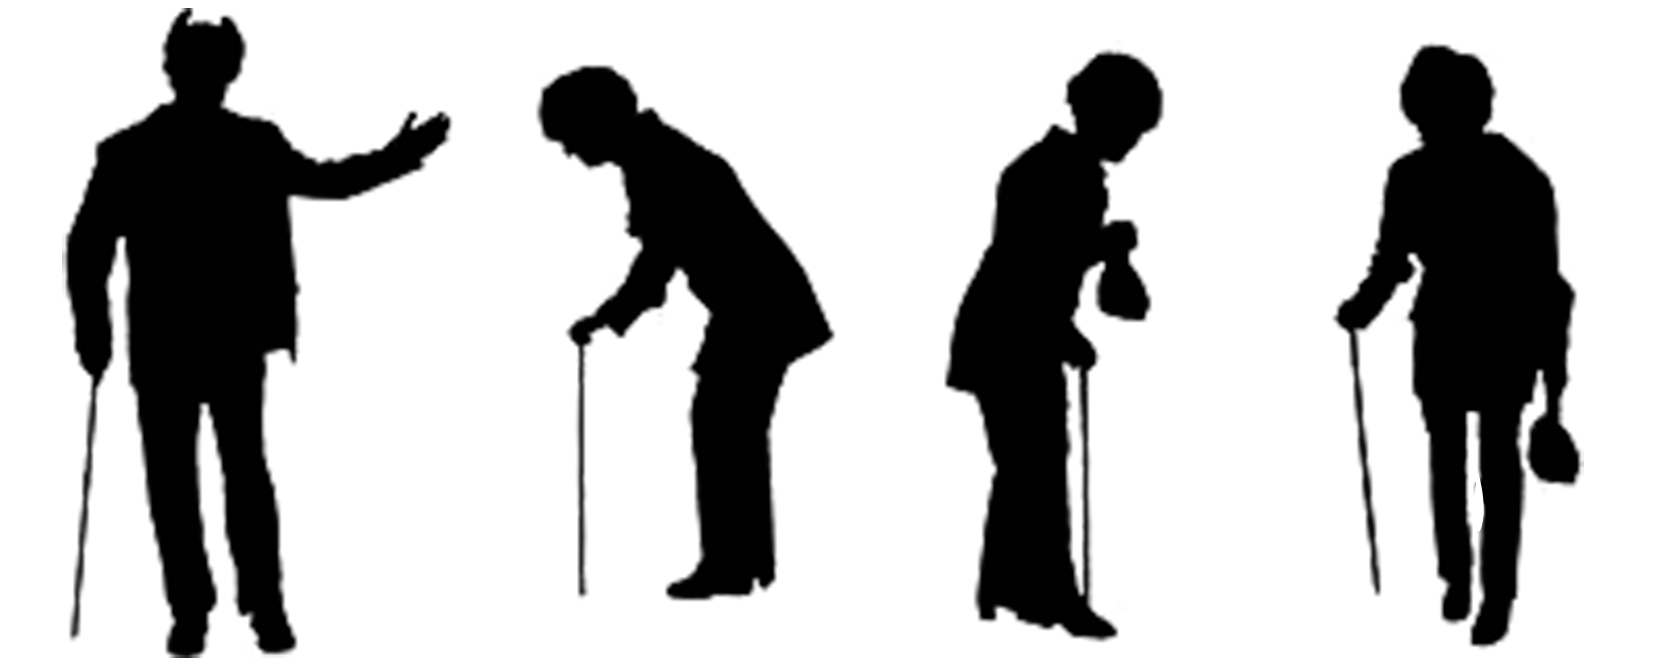 1667x666 Silhouette Old Age Illustration